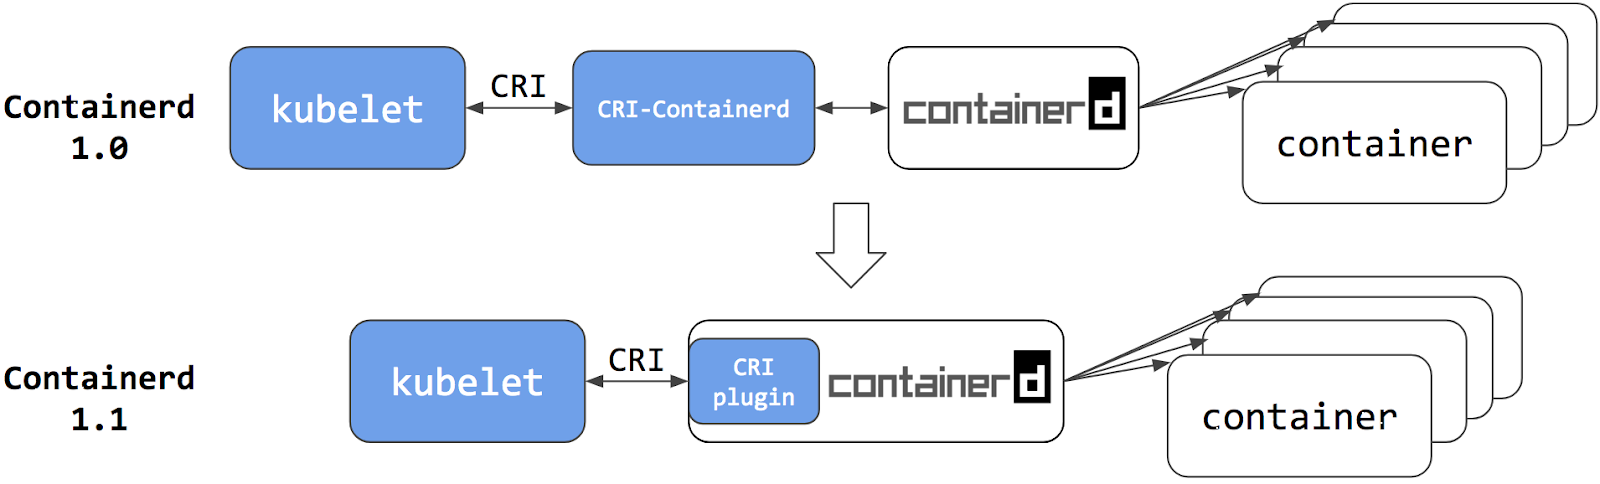 containerd.png